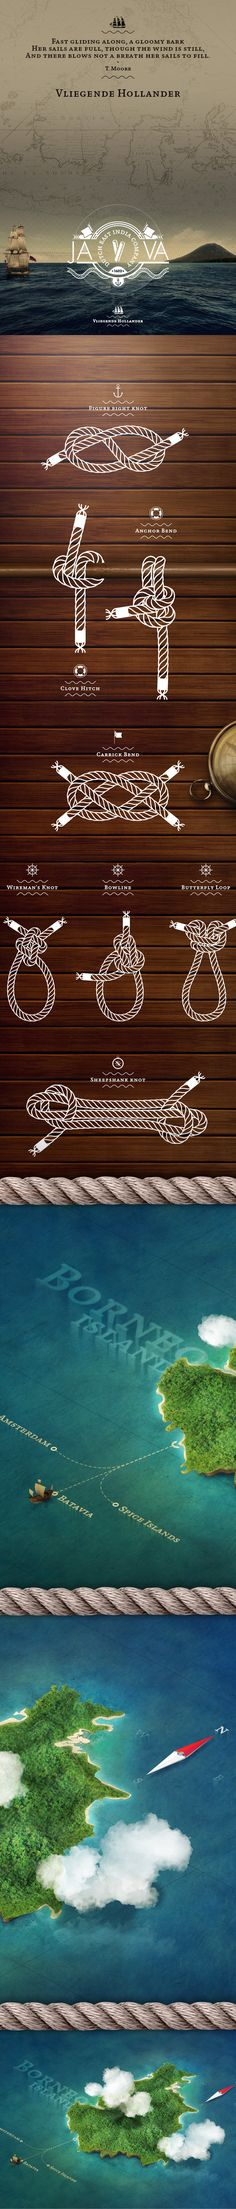 Vliegende Hollander by Alessandro Suraci, via Behance. | #webdesign #it #web…